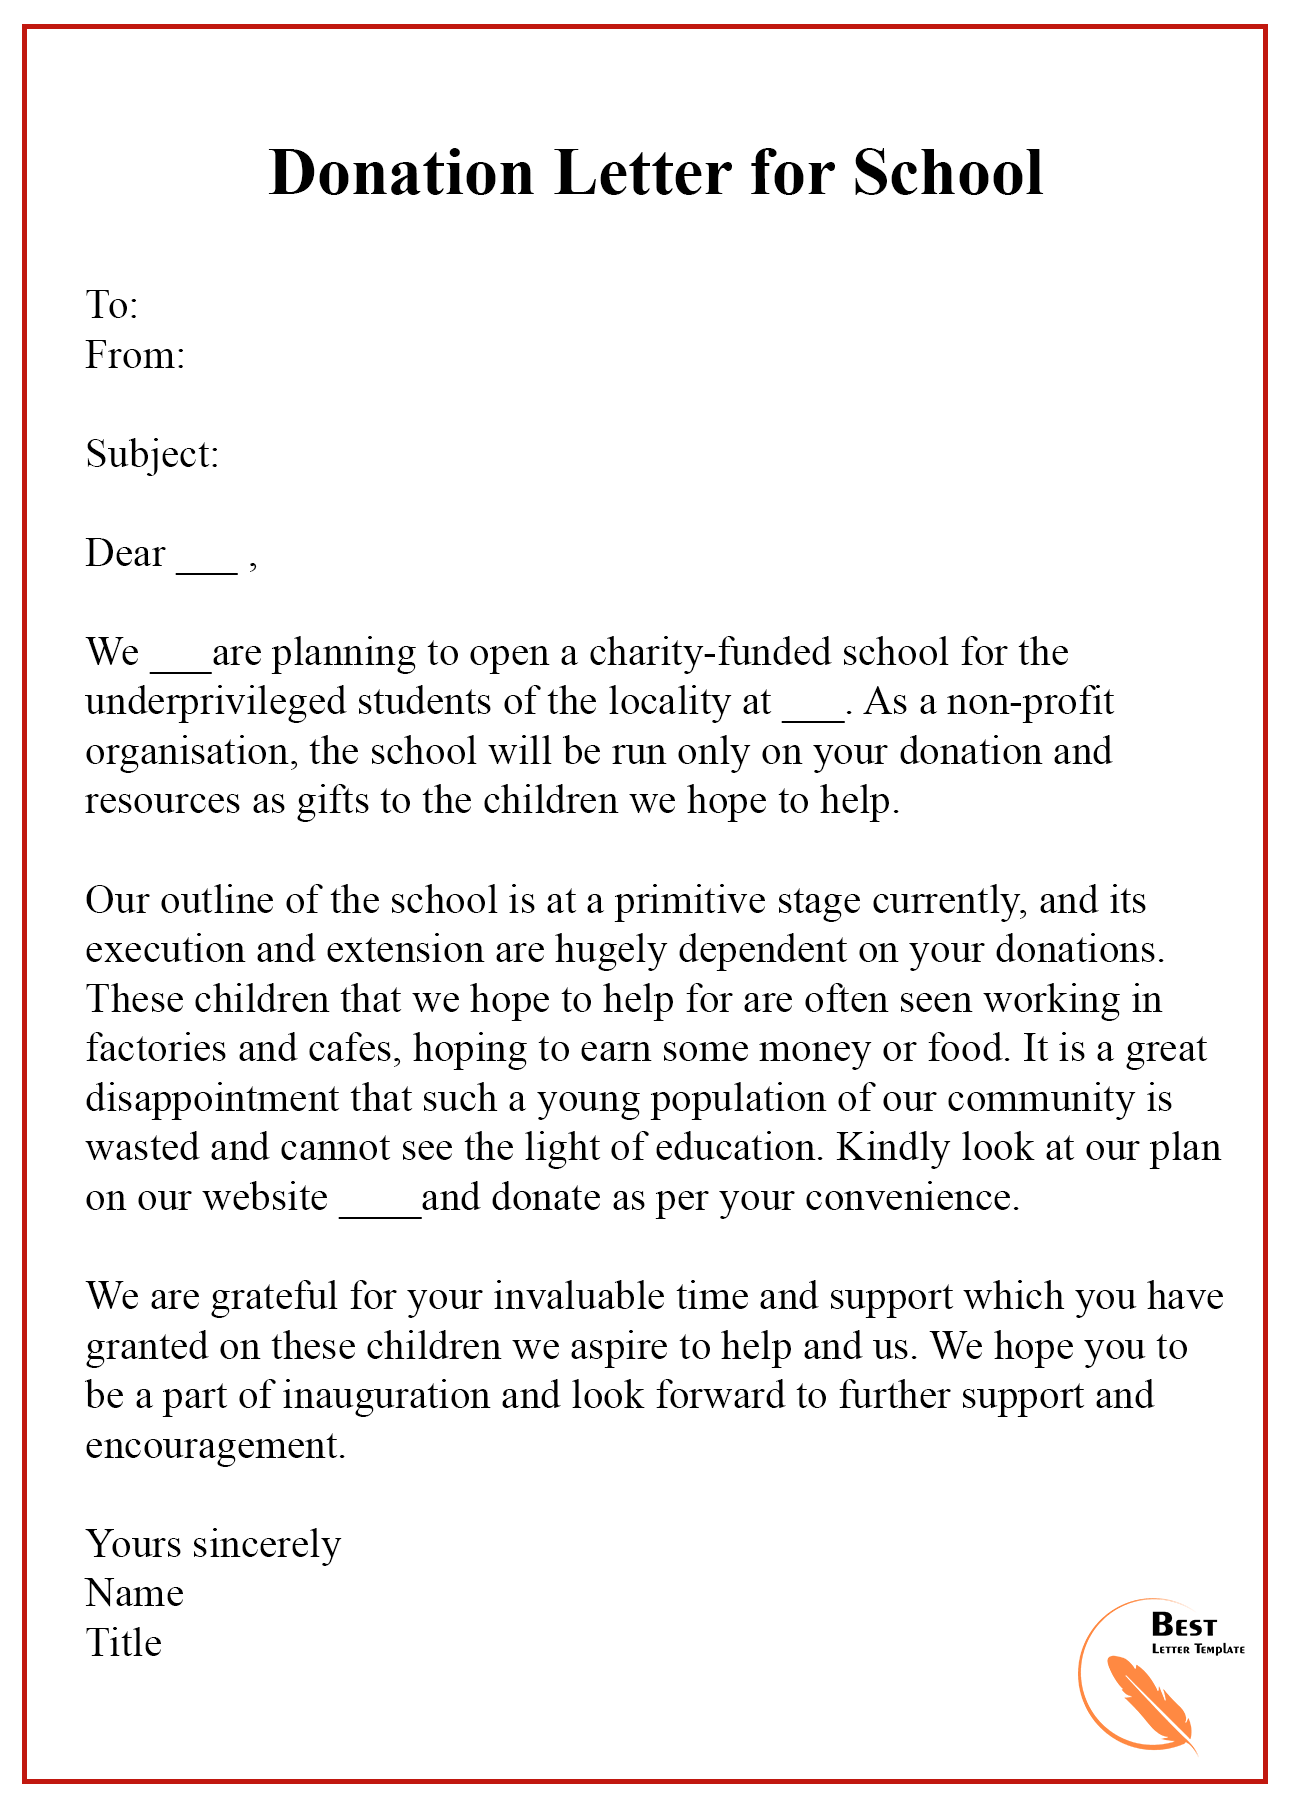 Donation Letter For School